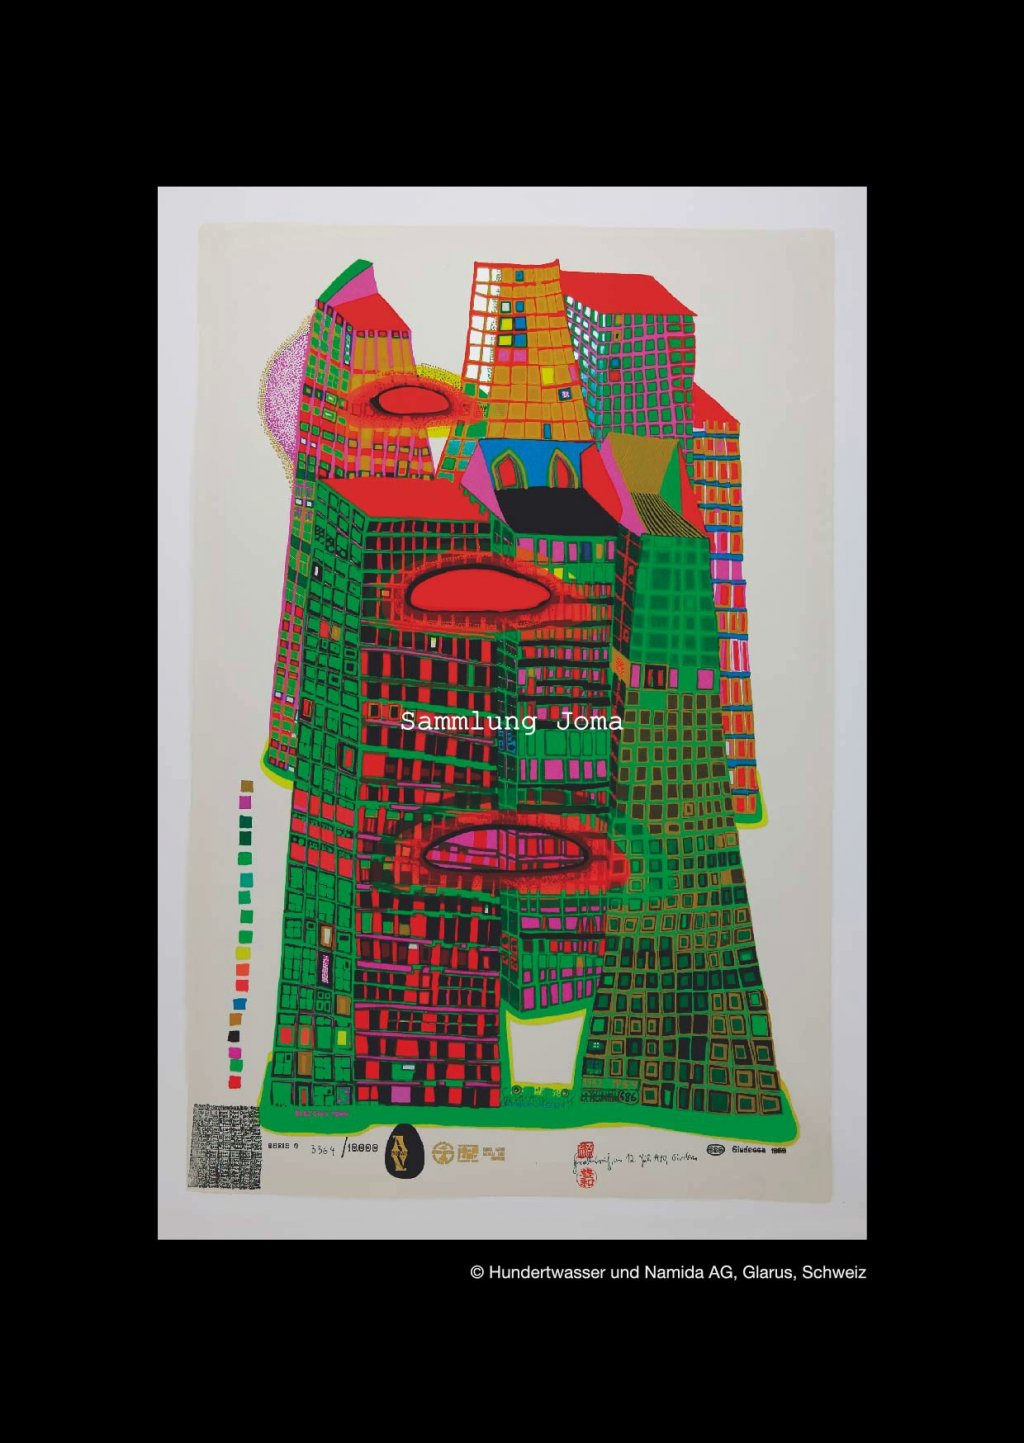 image-7263198-friedensreich-hundertwasser-good-morning-city Kopie.jpg